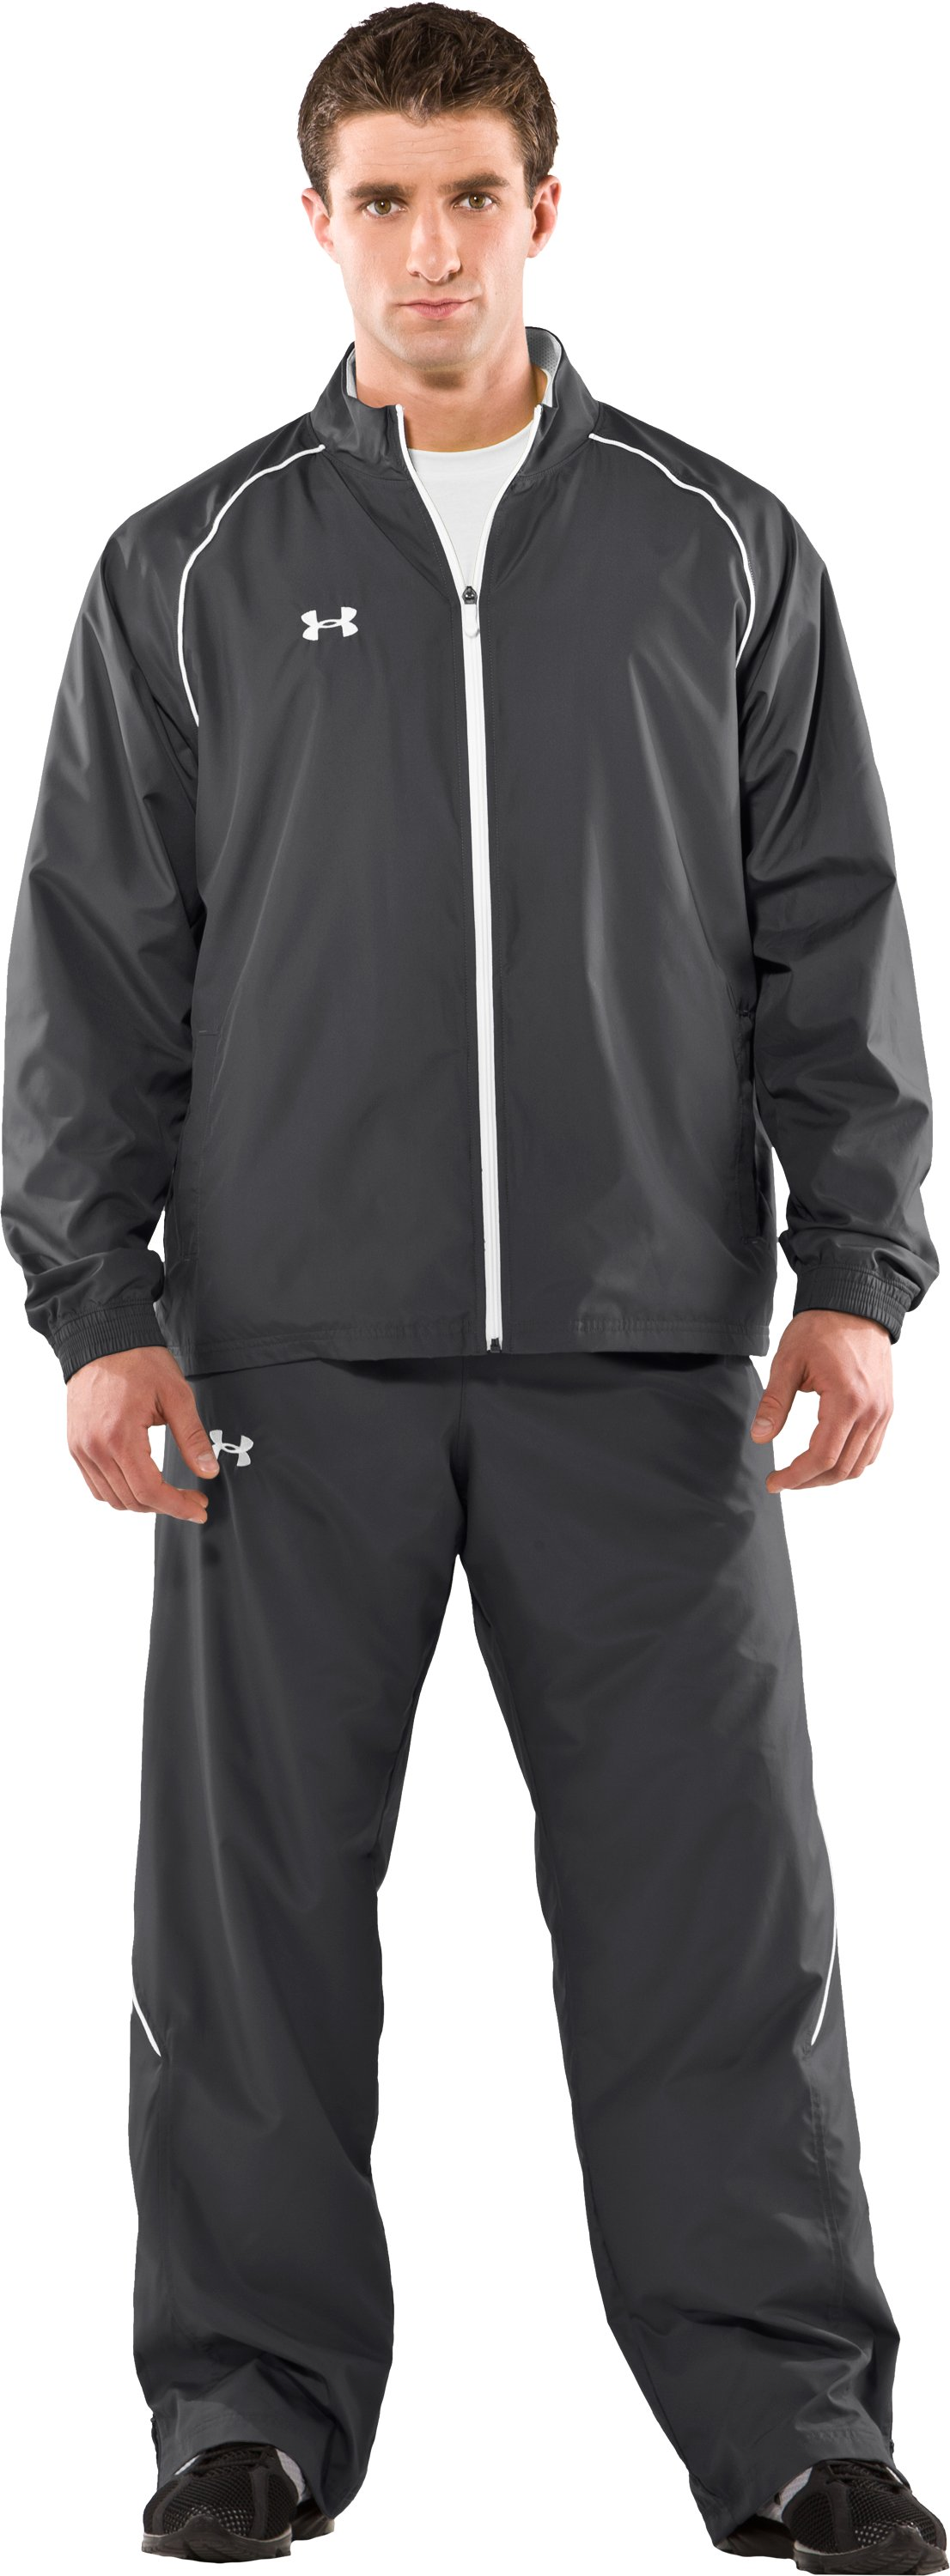 Men's UA Advance Woven Warm-Up Jacket, Graphite, zoomed image